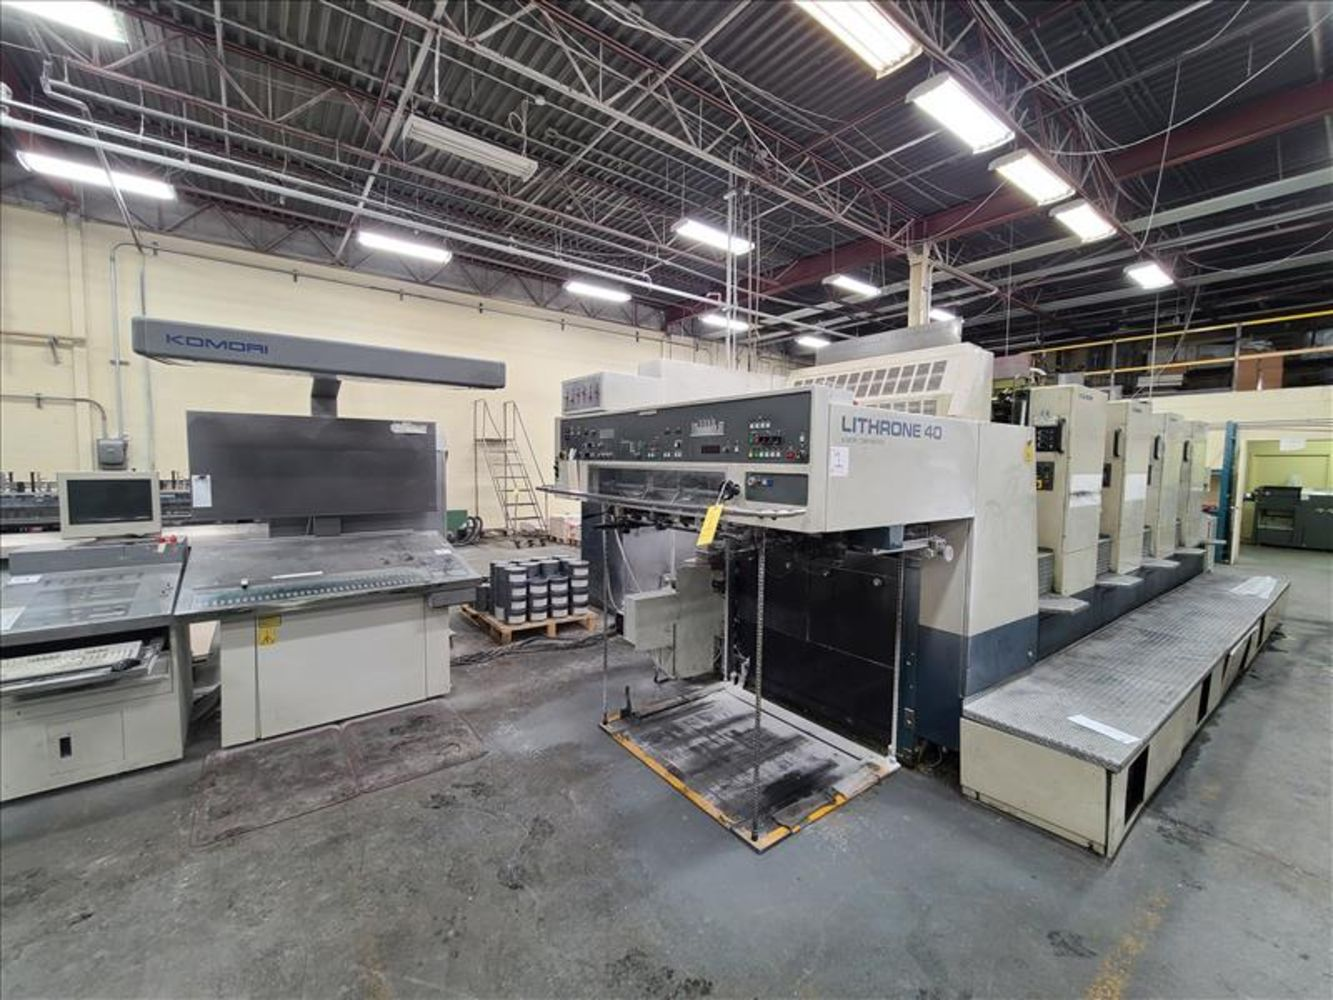 Printing and Bindery Facility - Komori Lithrone L-440 4 Colour Press - Short Notice Auction